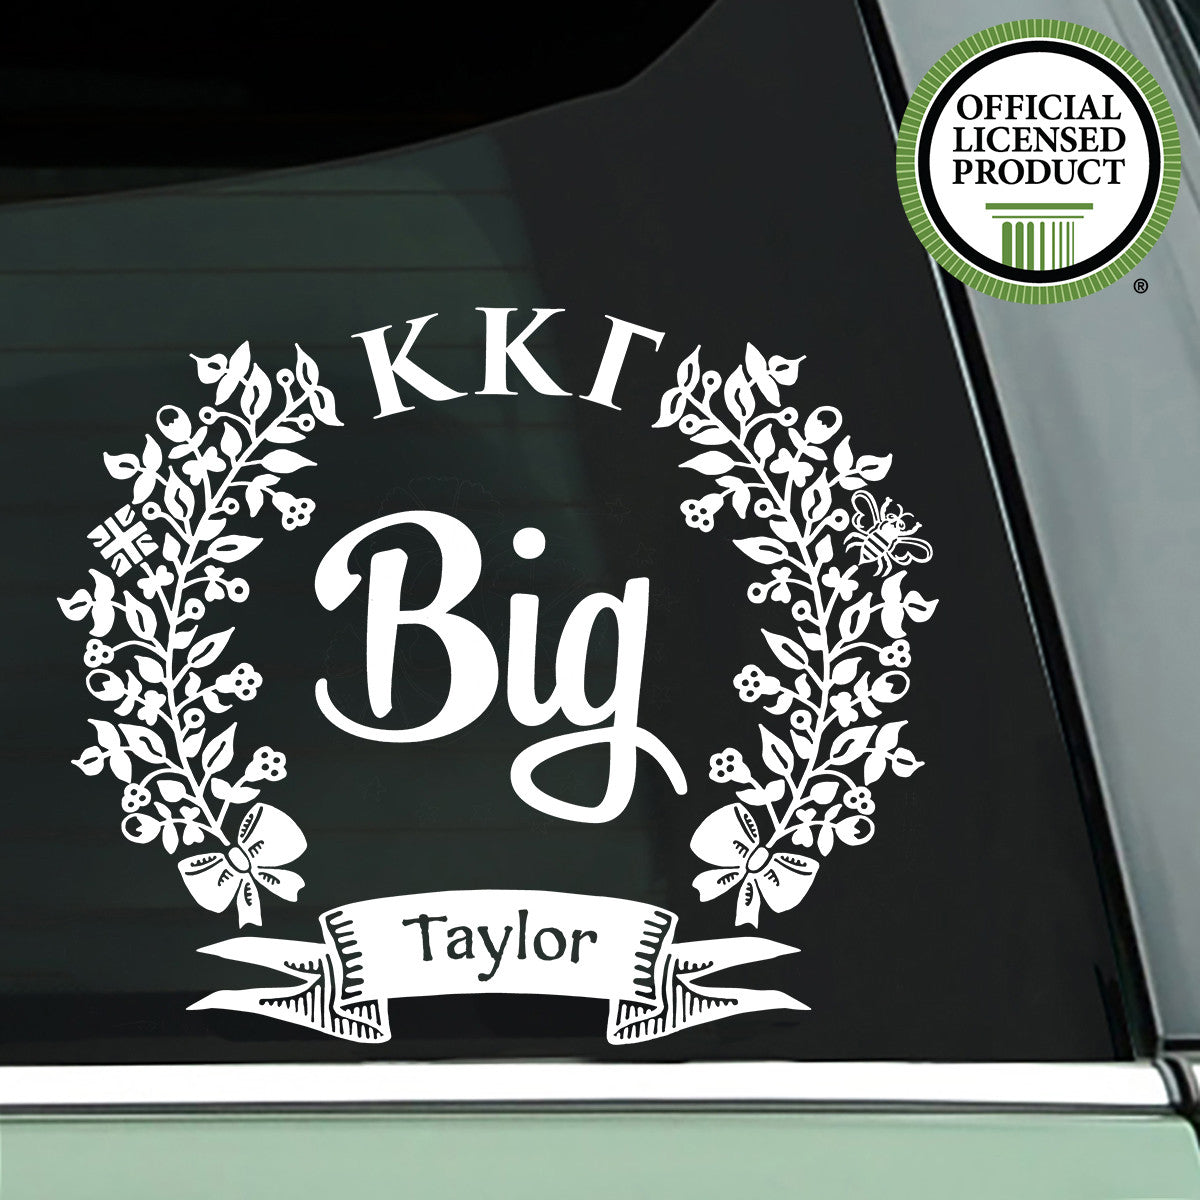 Brit and Bee Sorority Big Decal - Kappa Kappa Gamma - White